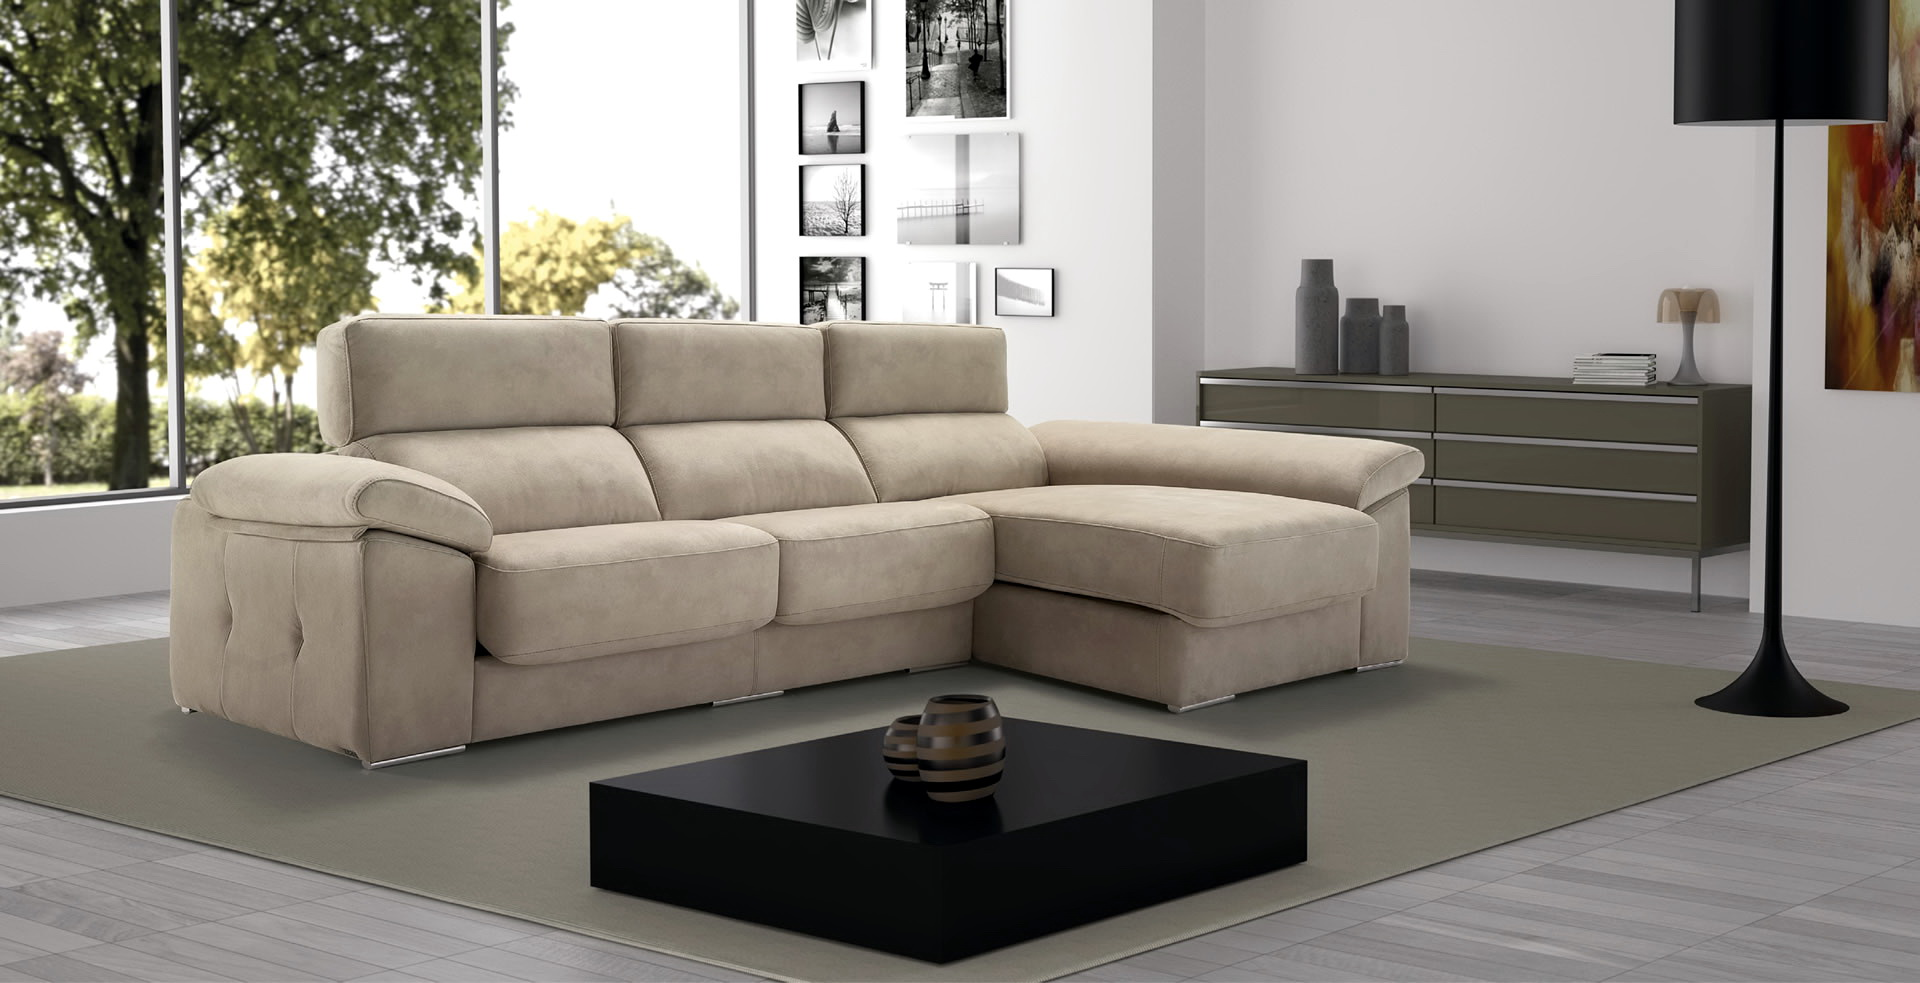 Muebles Bautista Sofas - Soria Sof Chaise Longue Modular Asientos Extensibles By Paco [mjhdah]http://www.bautistamuebles.com/wp-content/uploads/2017/05/017-701-5.jpg